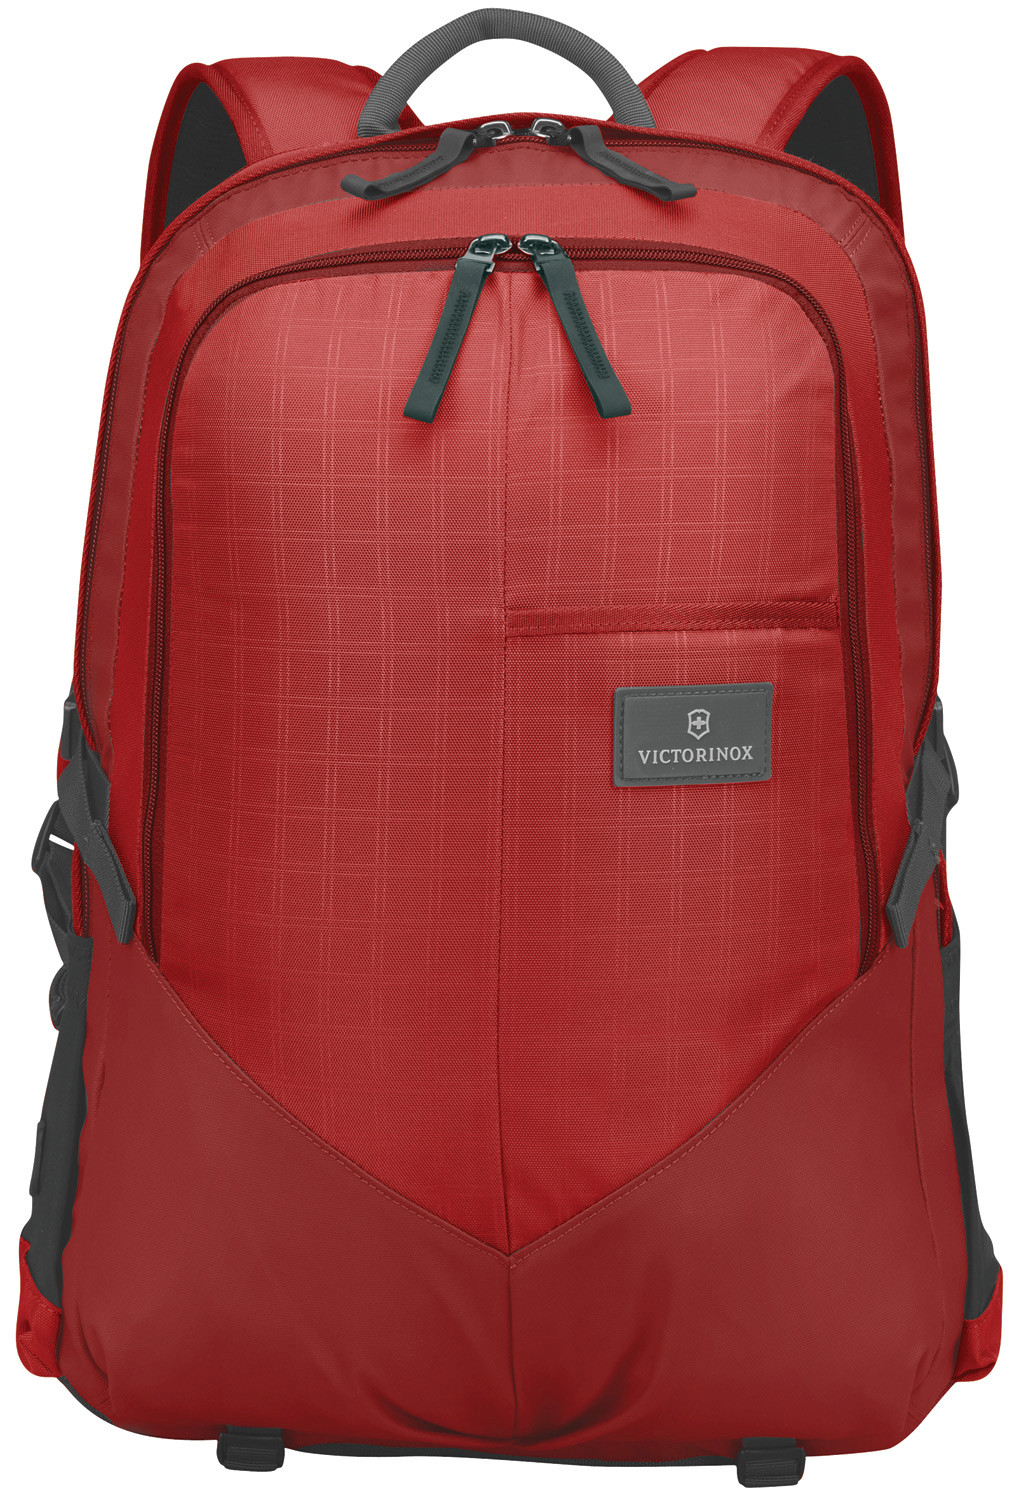 Victorinox Laptop Backpack in Bangalore